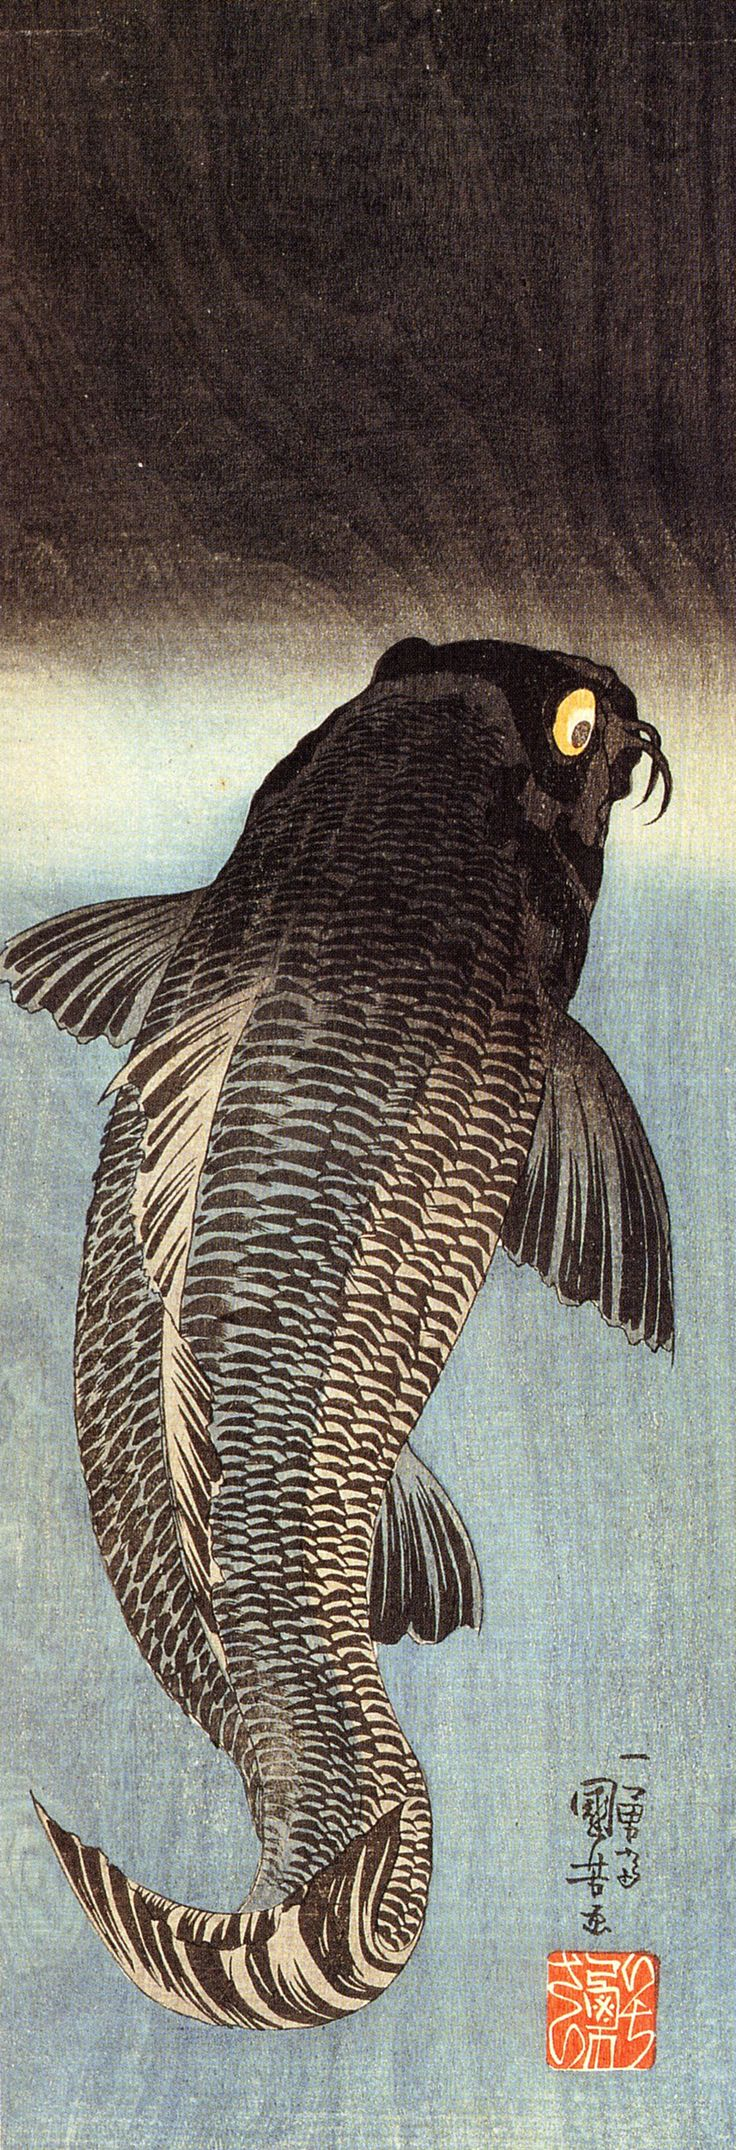 Black carp by Utagawa Kuniyoshi. Ukiyo-e style.  I love when you can clearly see the woodgrain in woodcuts!